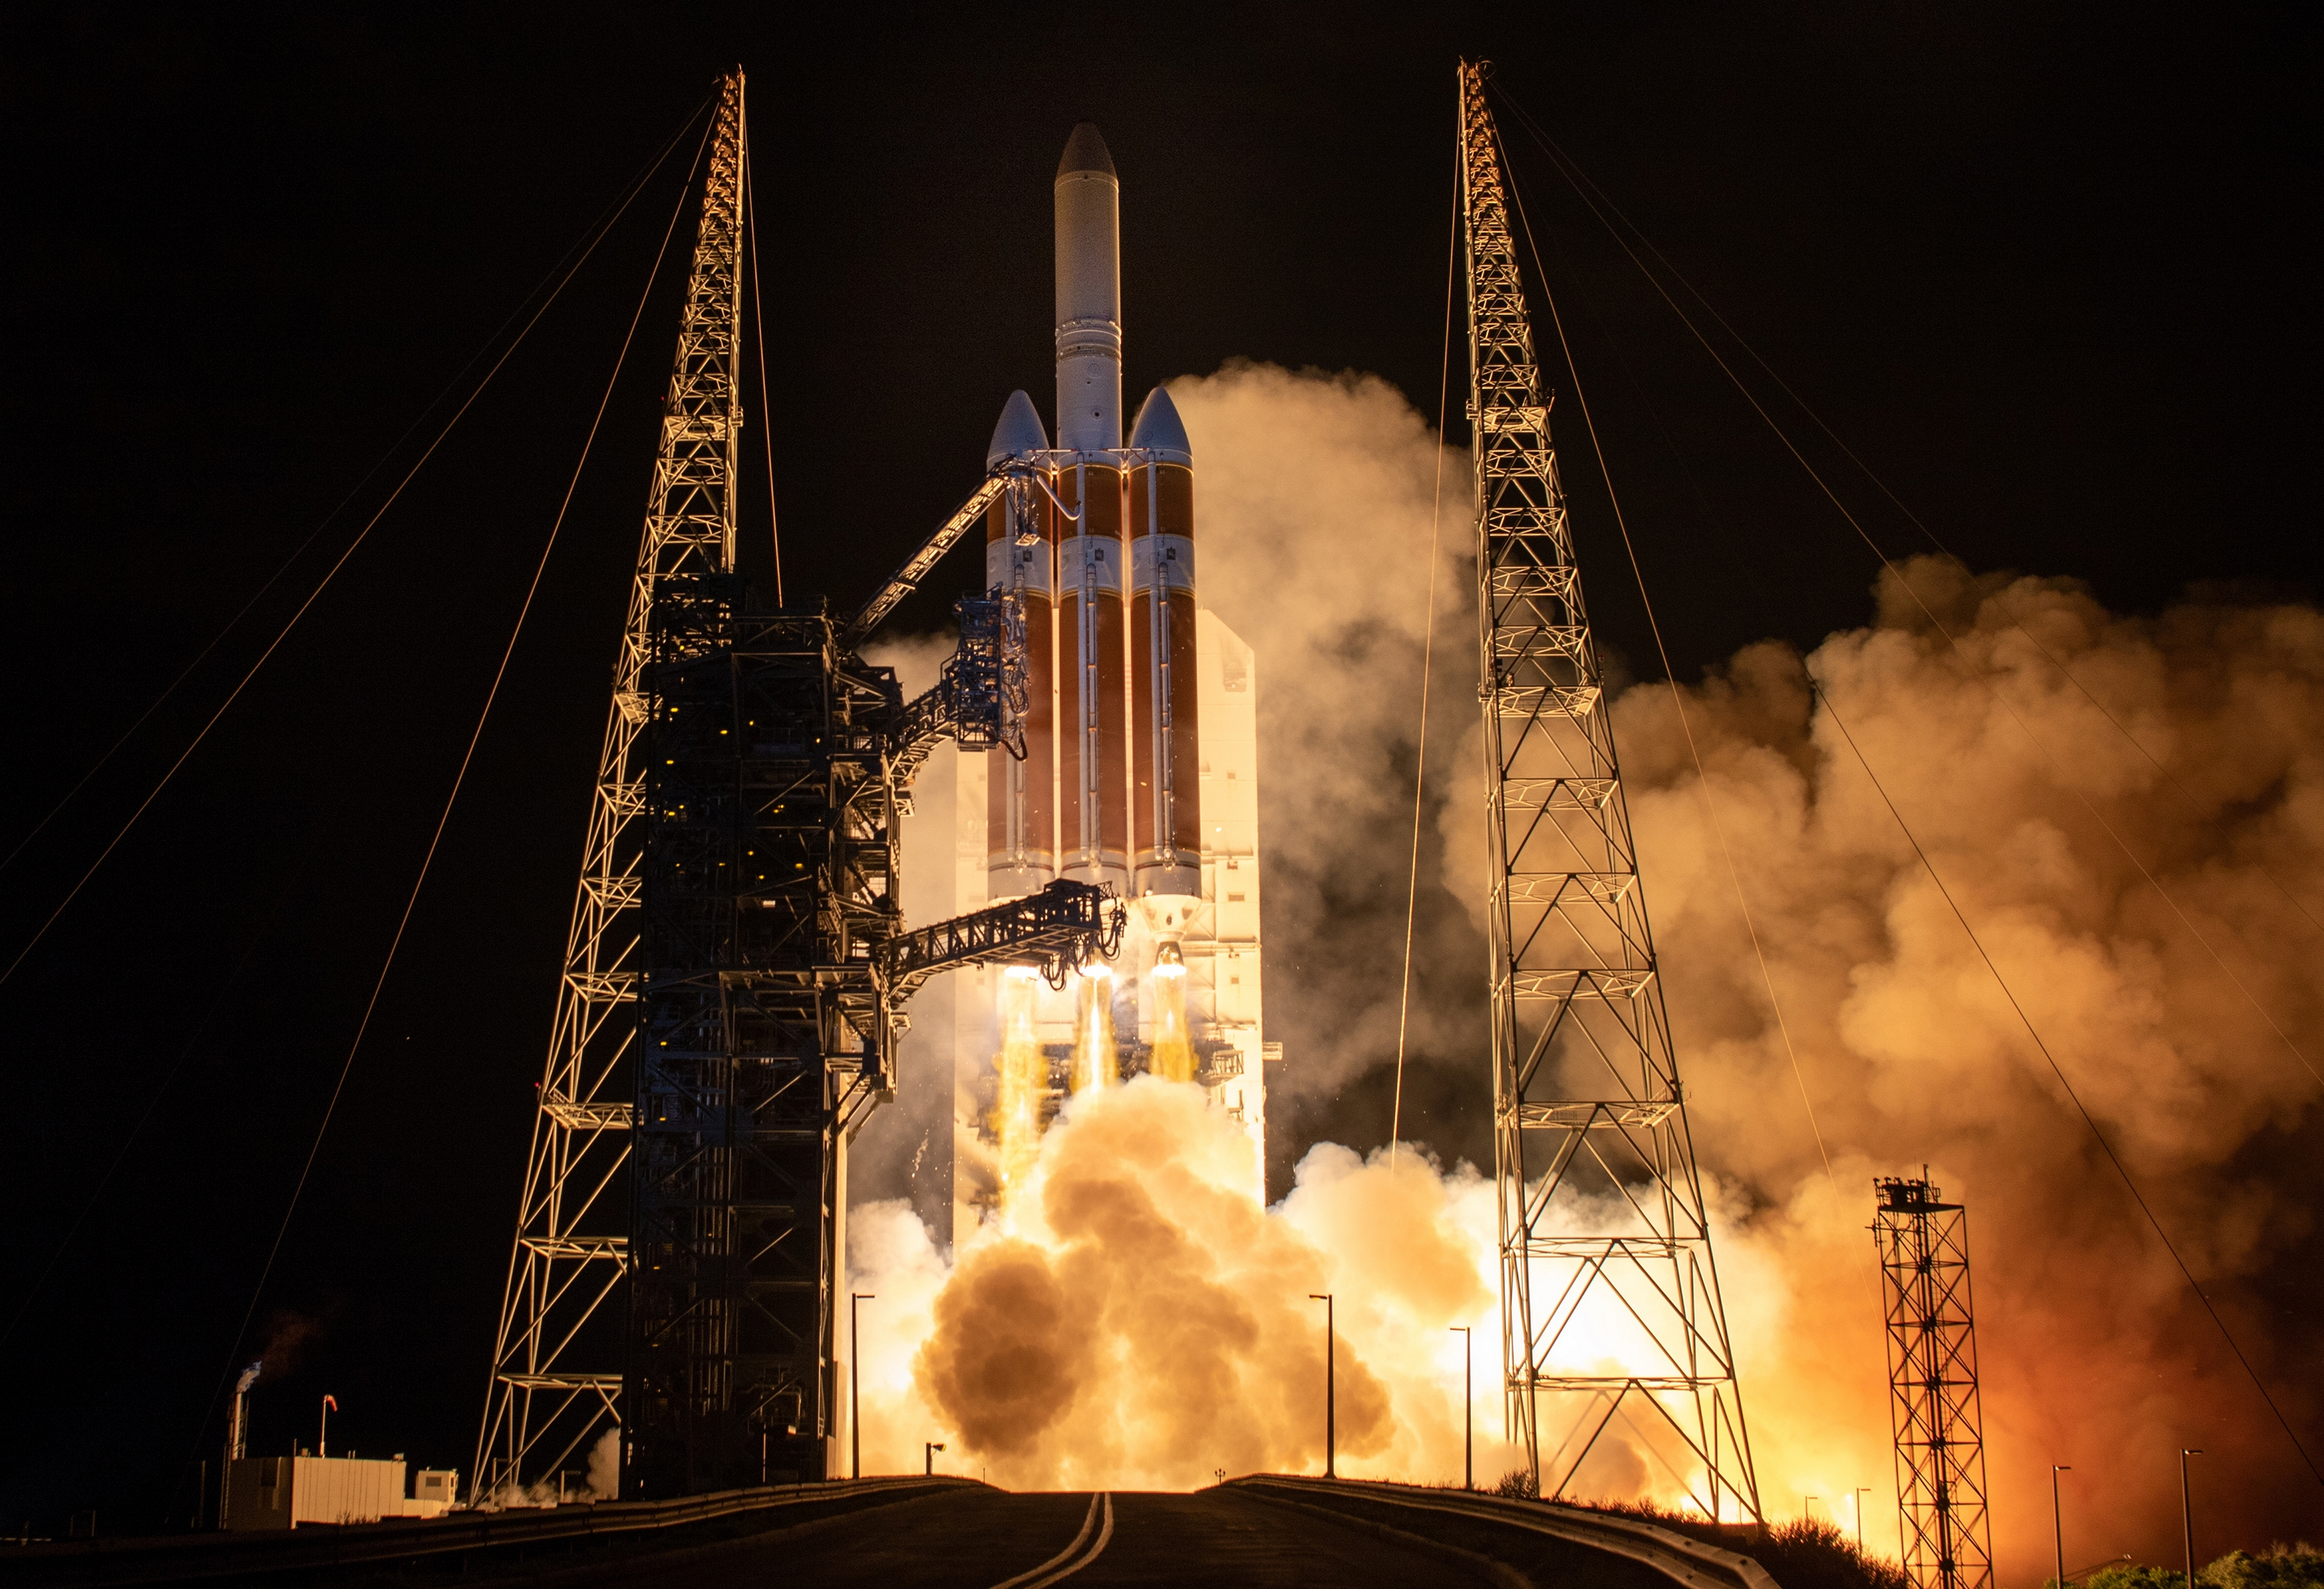 kemps office launches probe - HD2950×2017